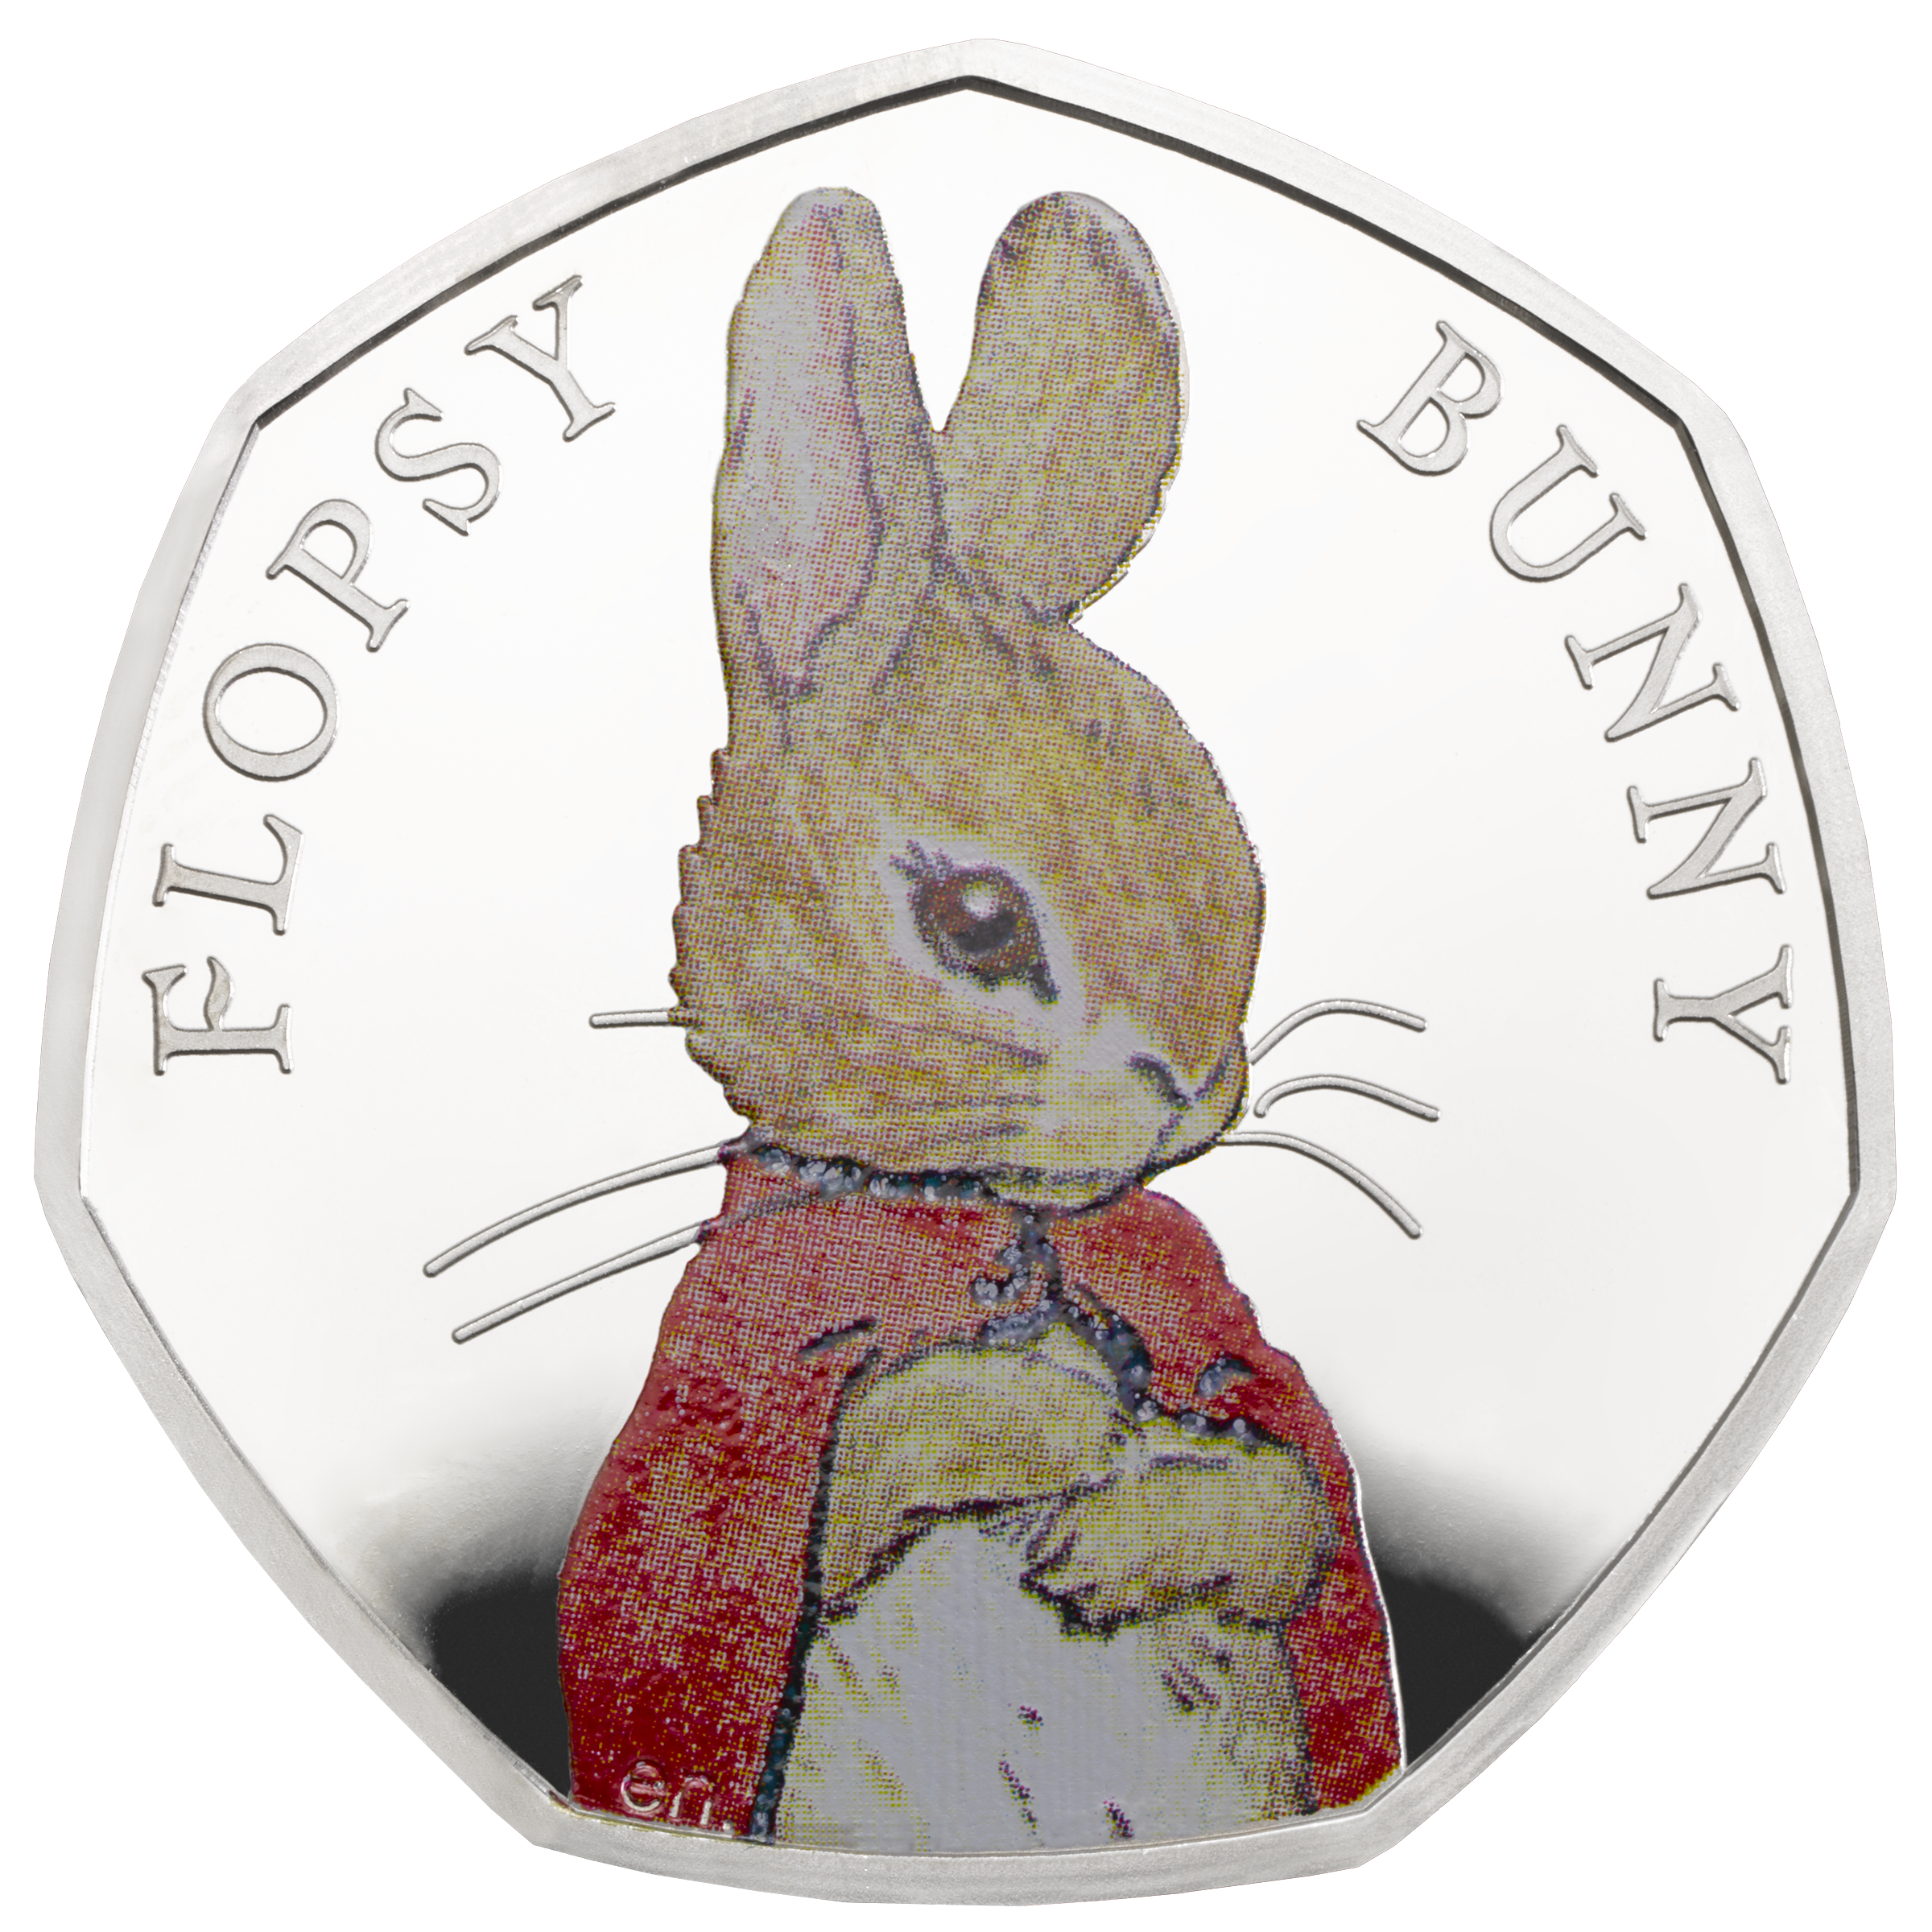 Flopsy Bunny 2018 UK 50p Silver Proof Coin rev tone - ukp62894.png